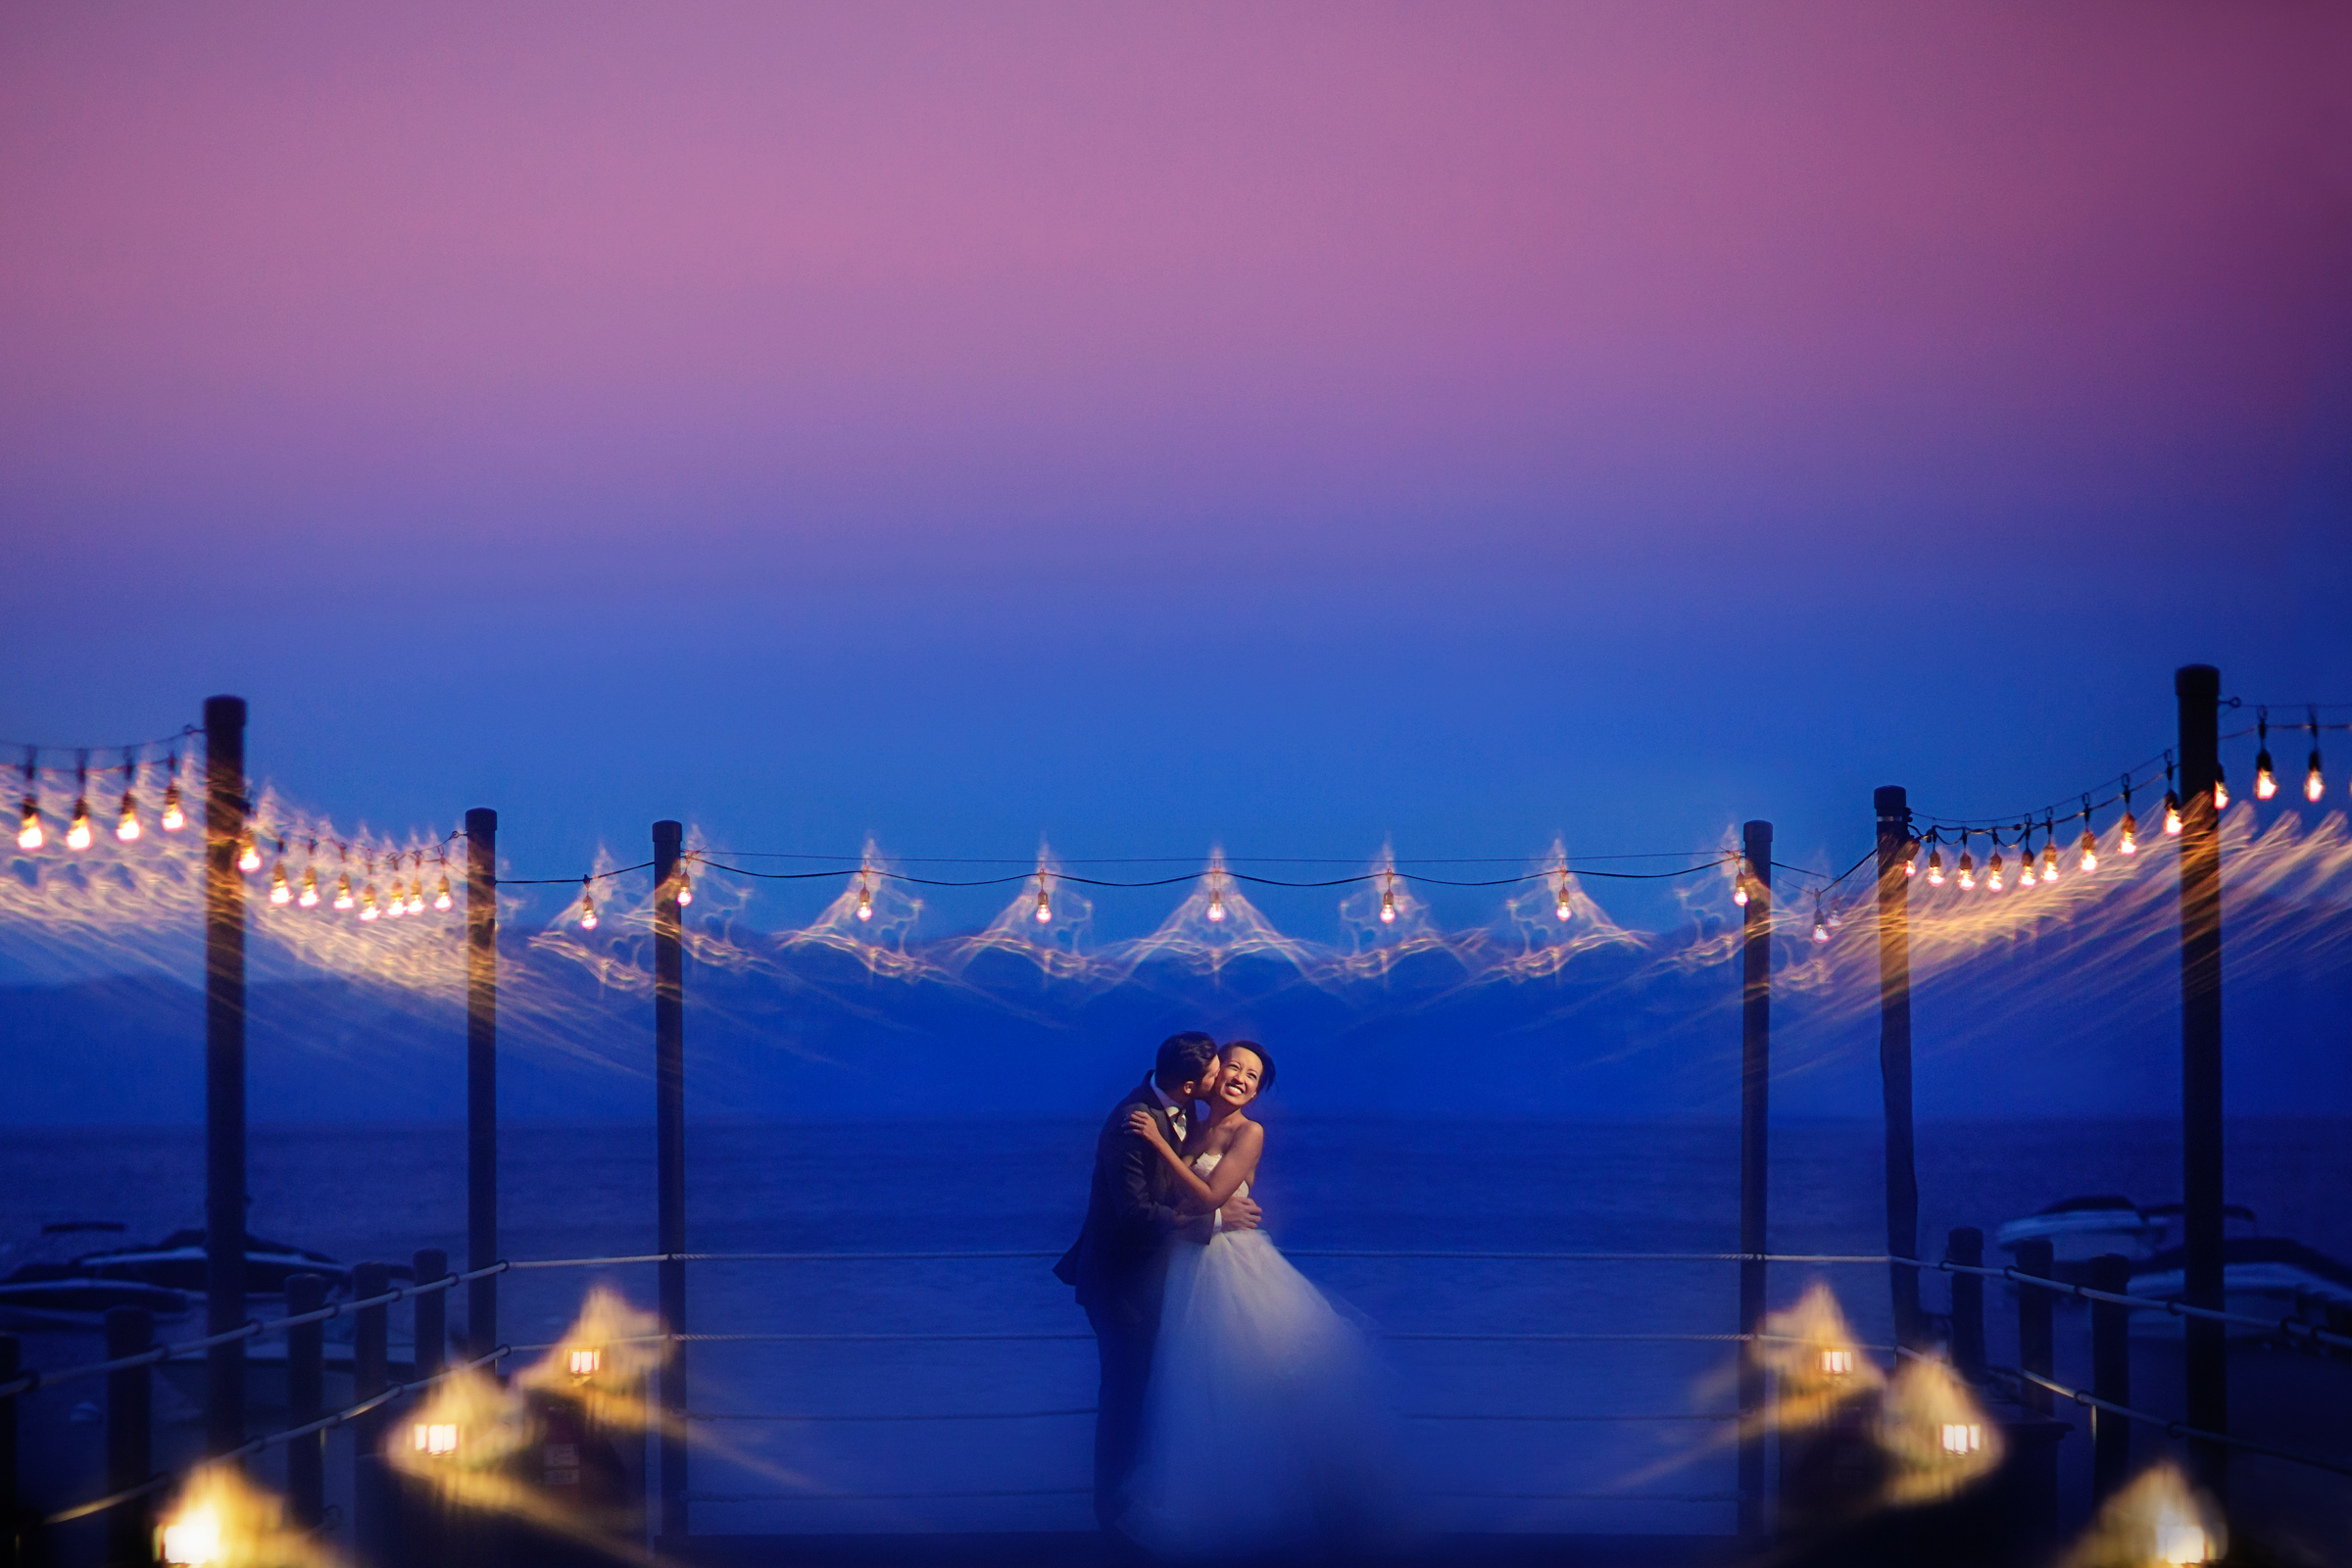 Bride and groom at dusk with slow exposure of bistro lights - photo by Chrisman Studios